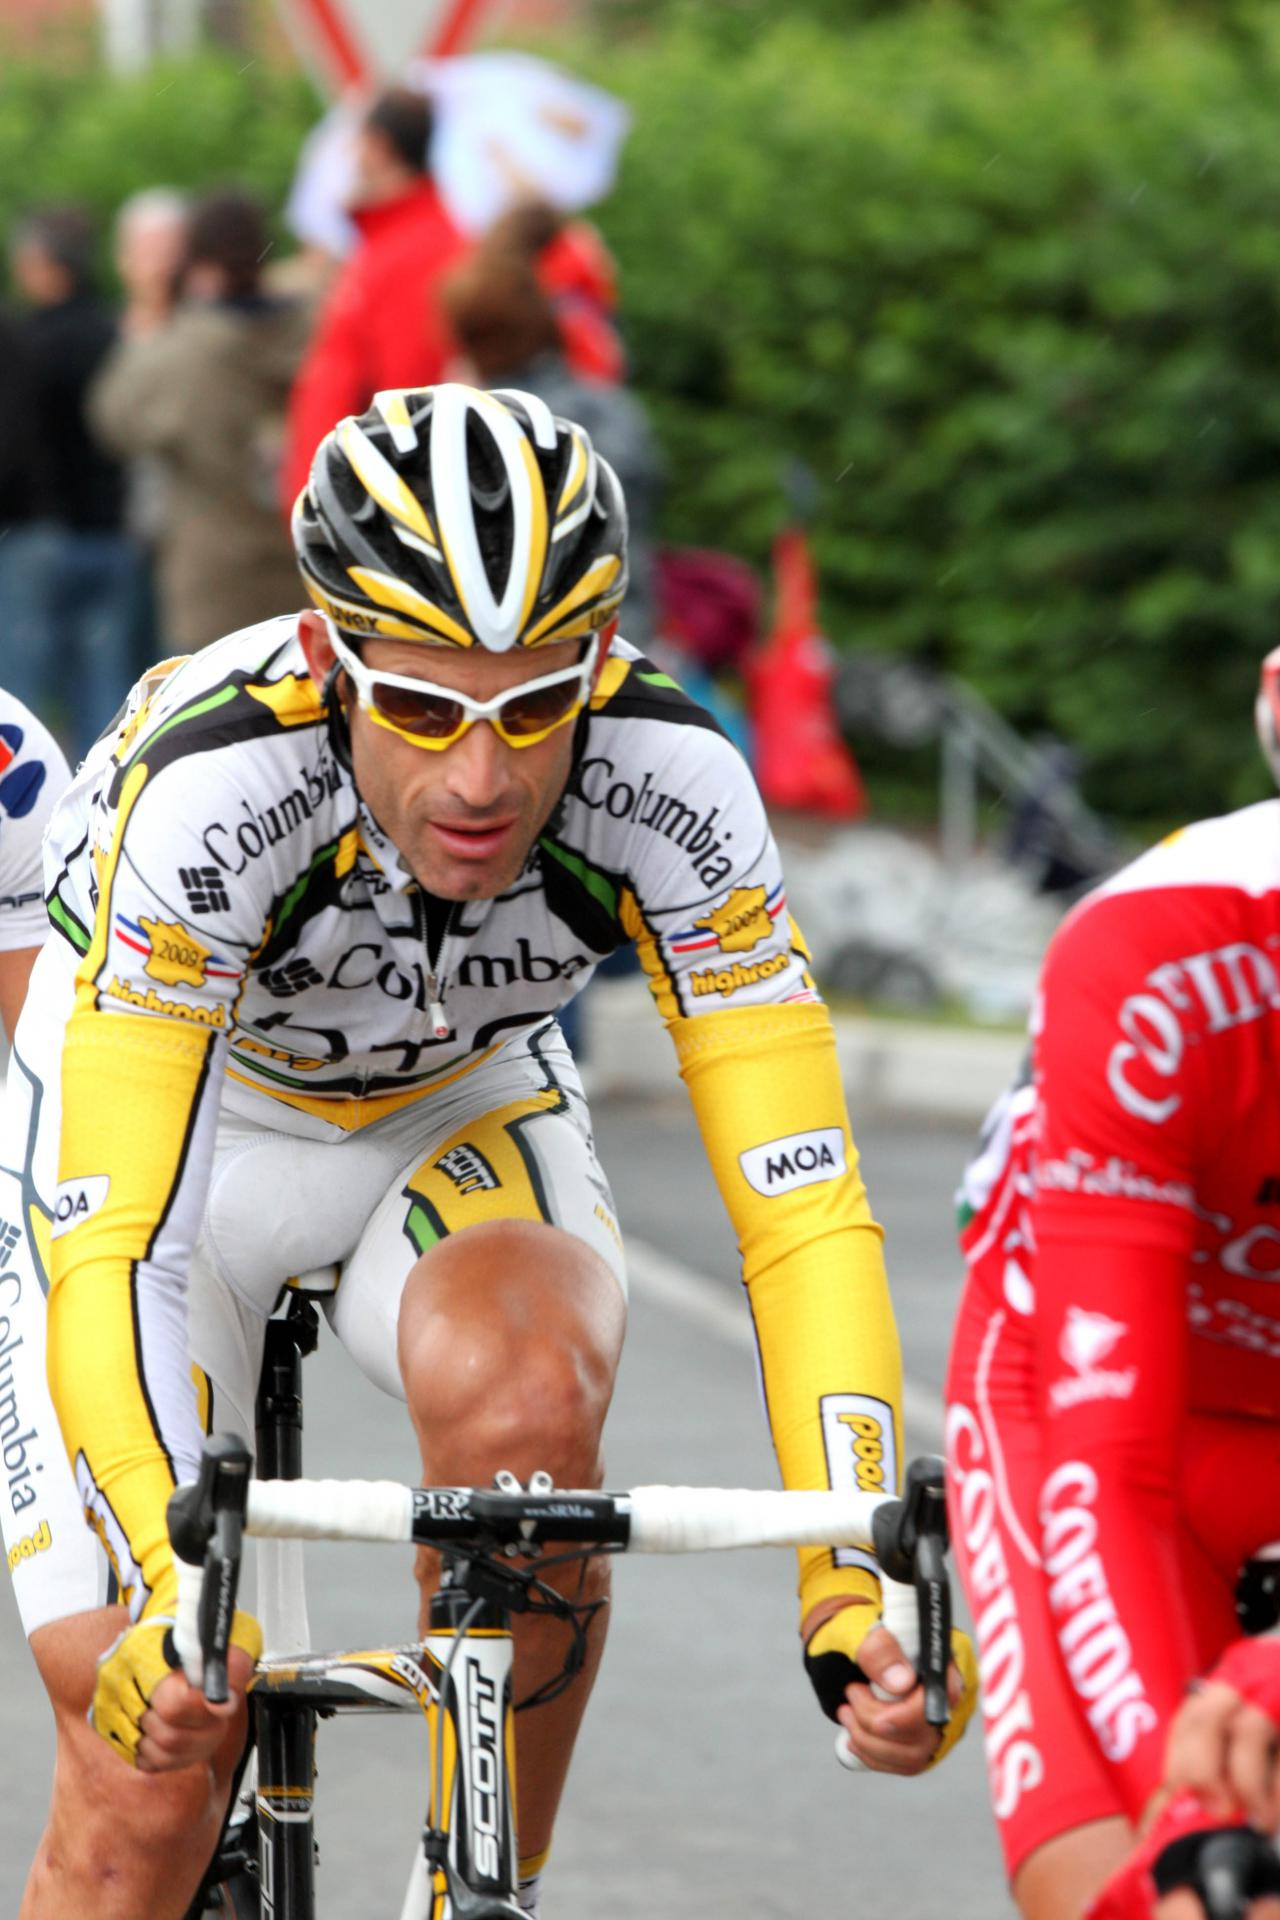 George Hincapie to retire in August after breaking Tour de France ...